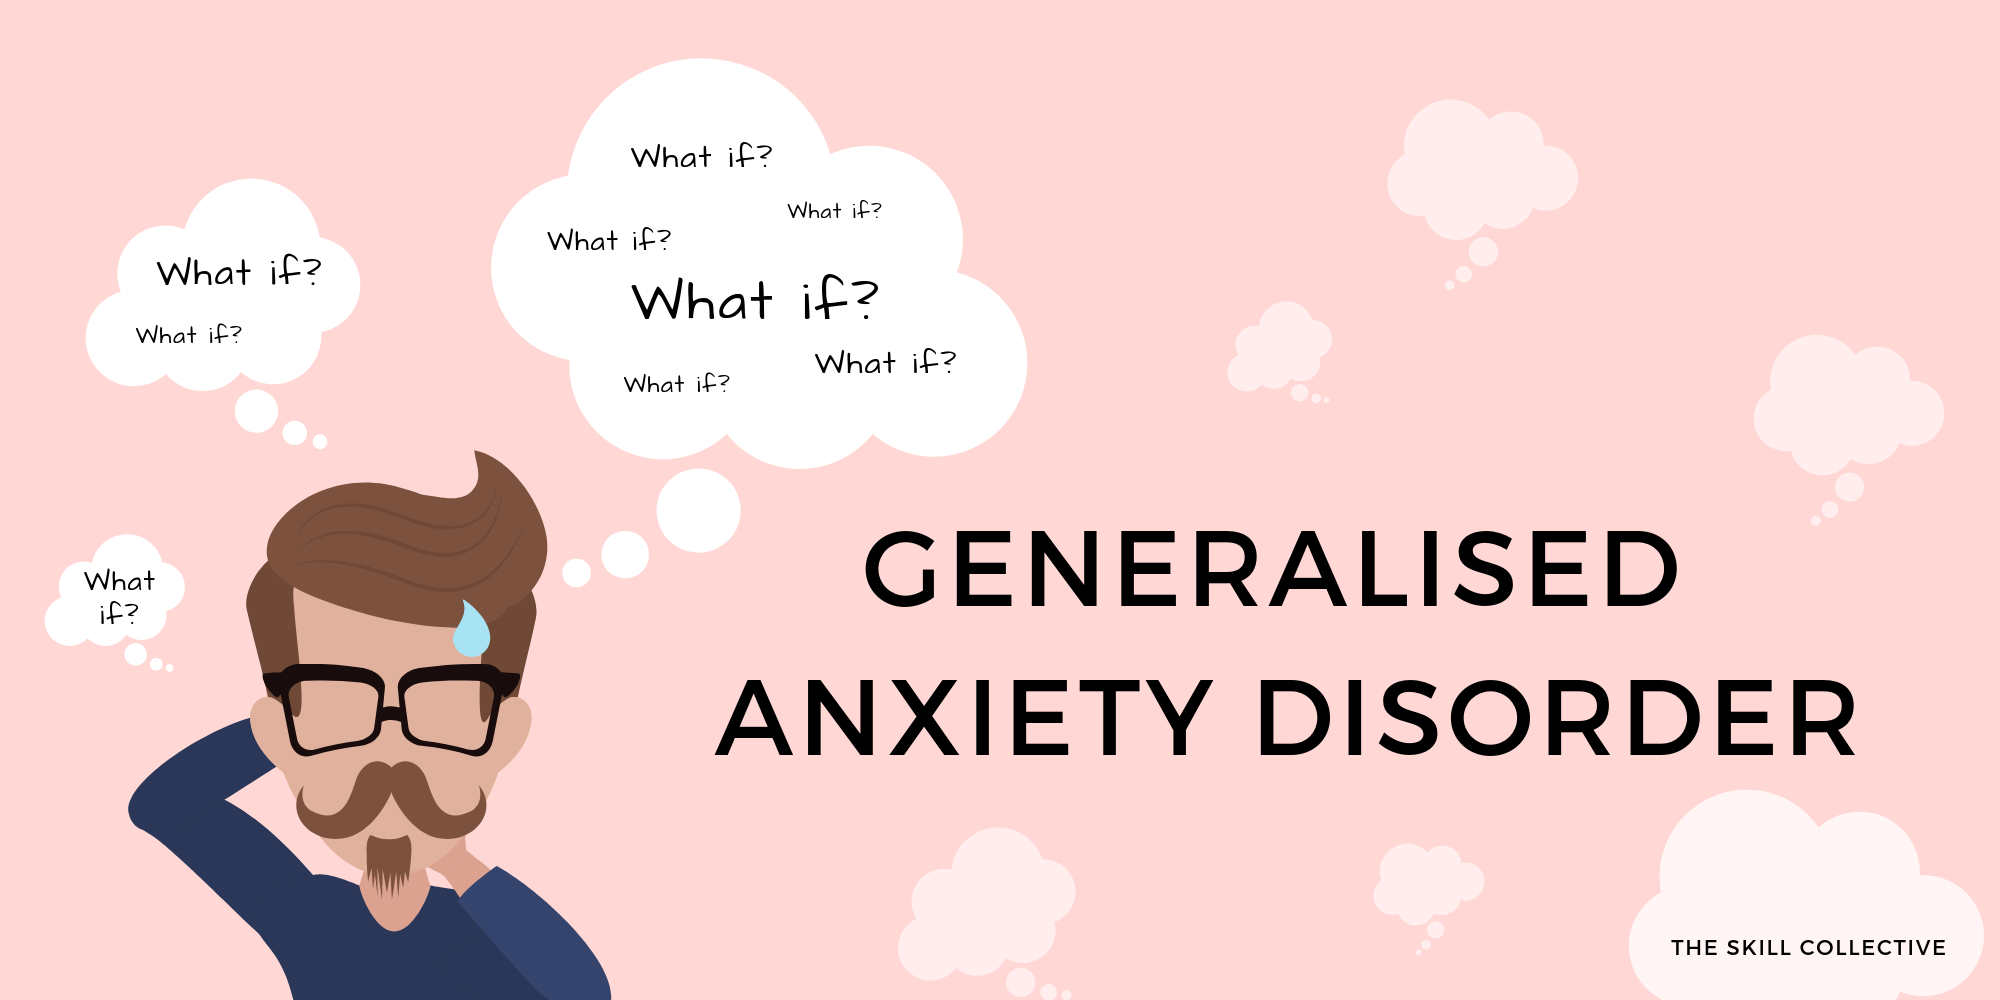 Chronic worrying and generalised anxiety disorder (GAD) treatment- tips from The Skill Collective Clinical psychologists and counsellors in Subiaco Perth